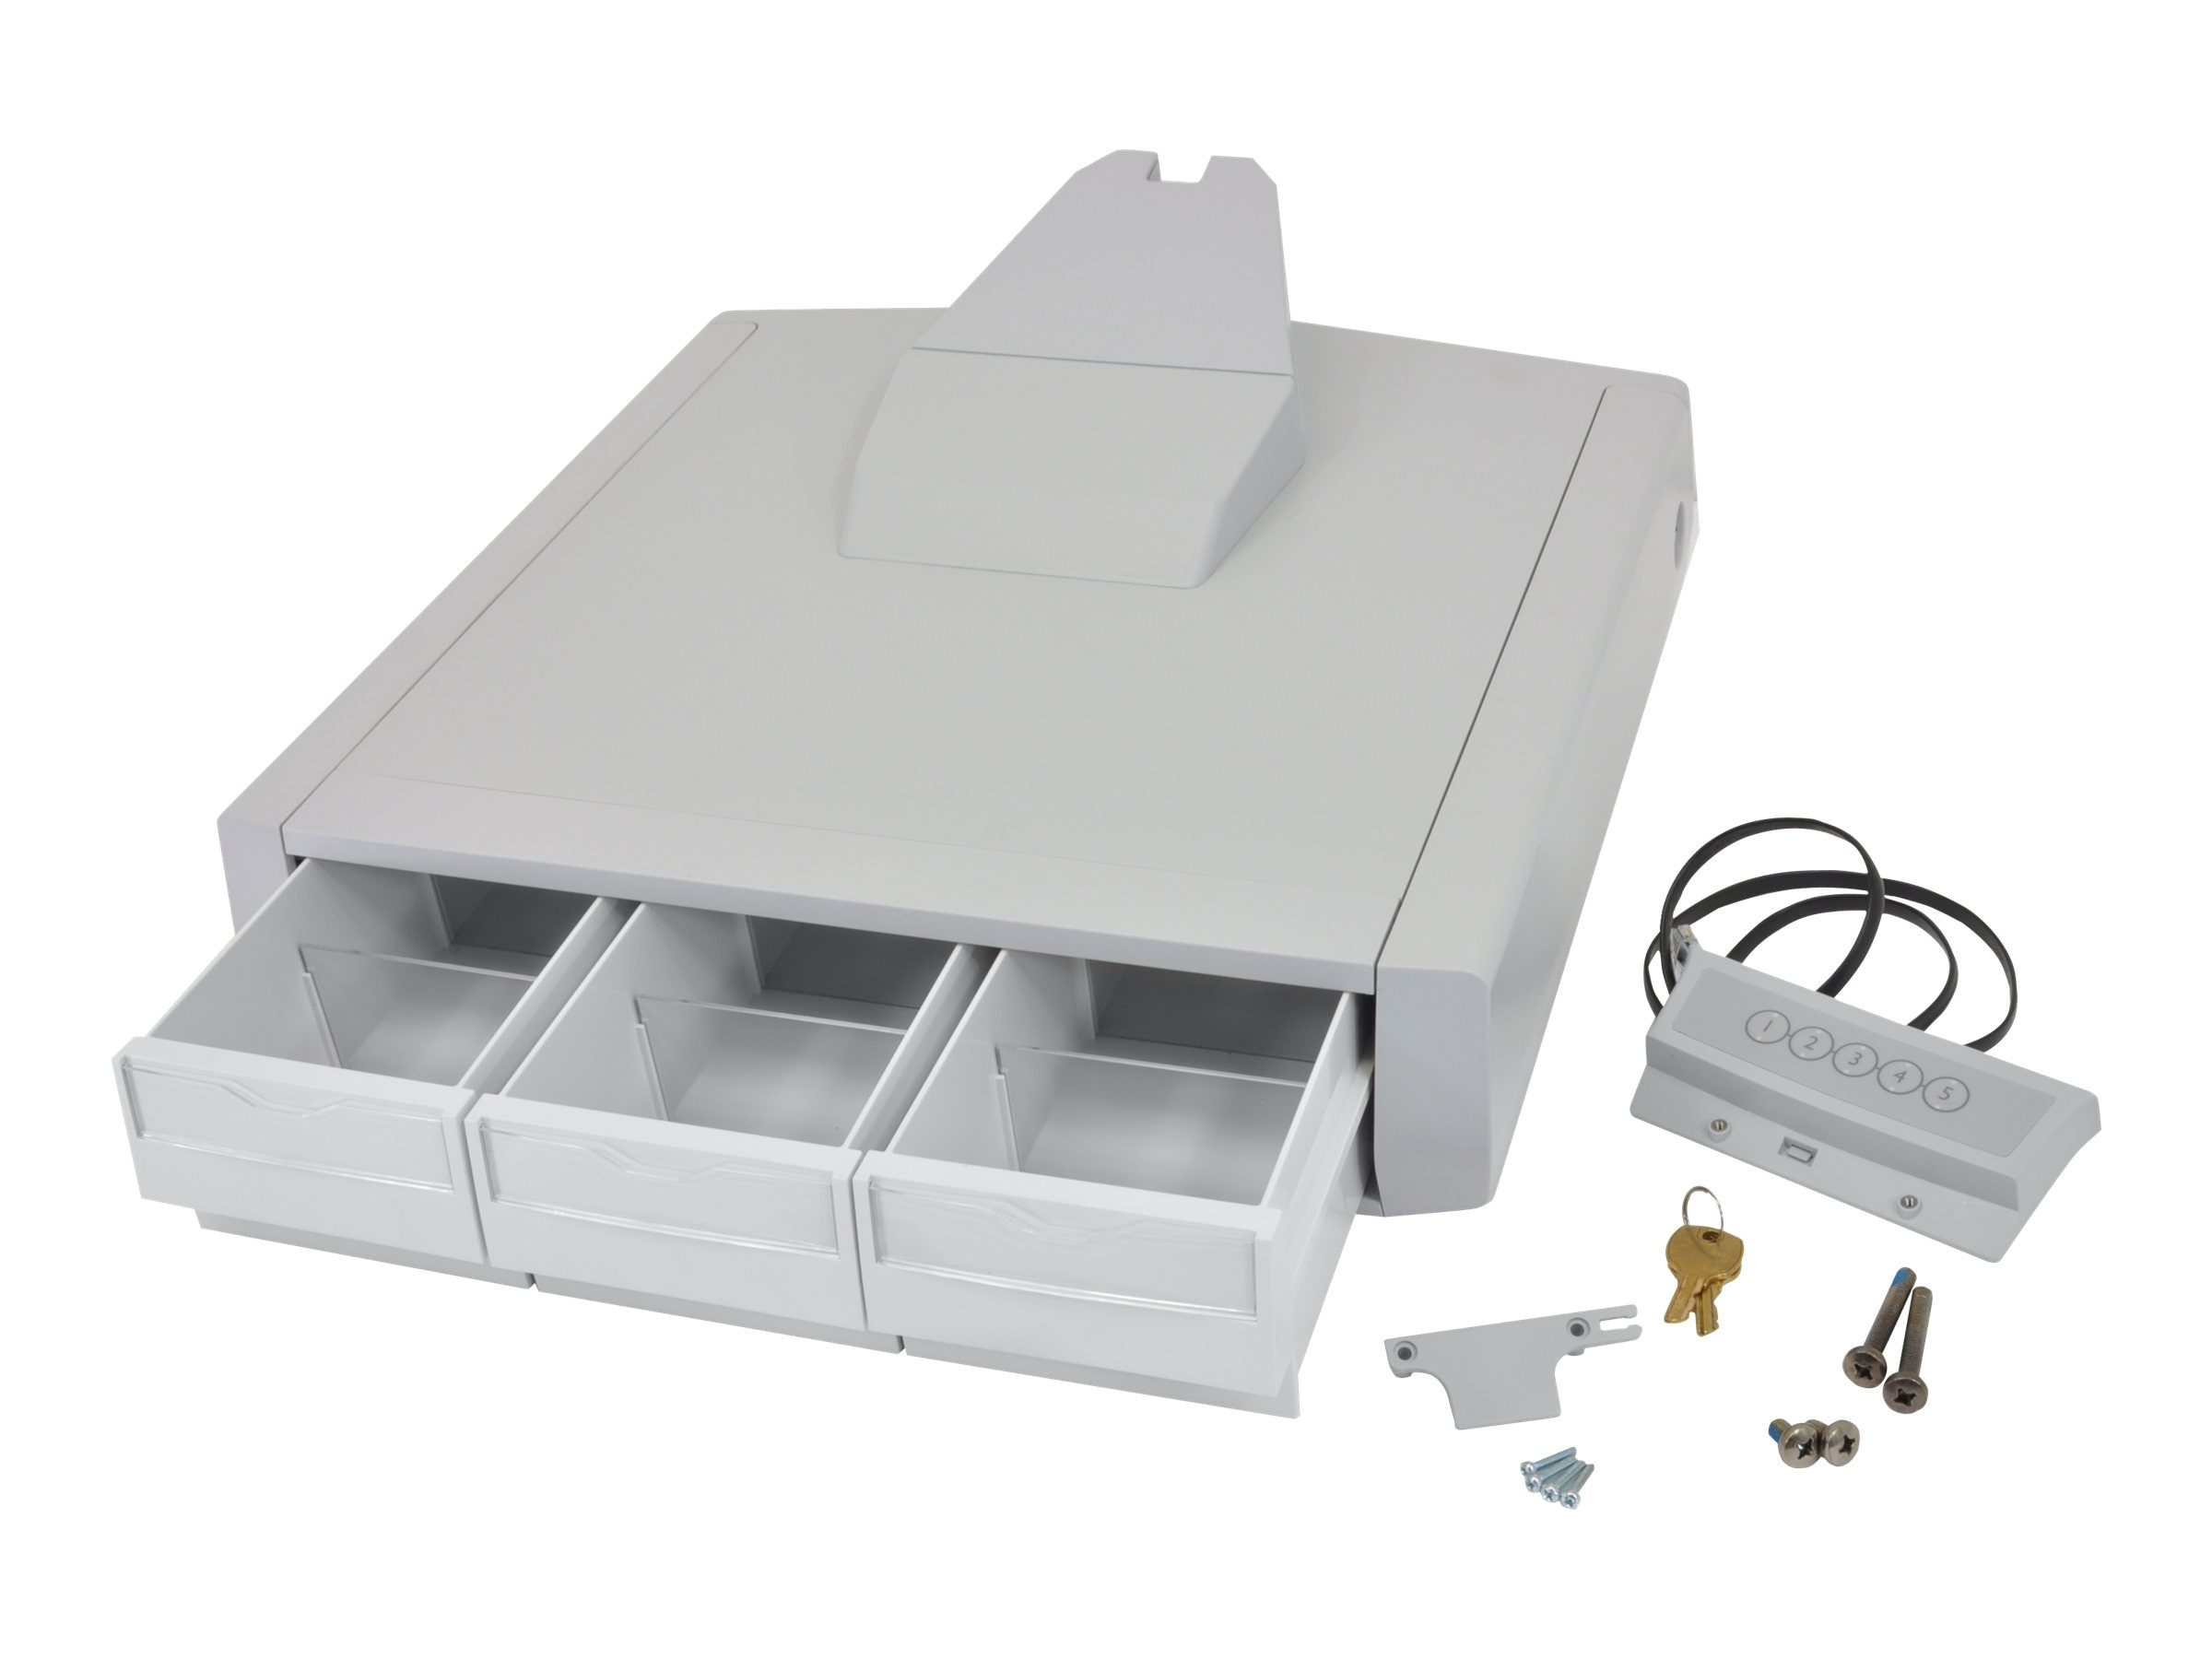 Ergotron StyleView Primary Drawer SV41 Laptop Triple, 97-728, 15051732, Cart & Wall Station Accessories